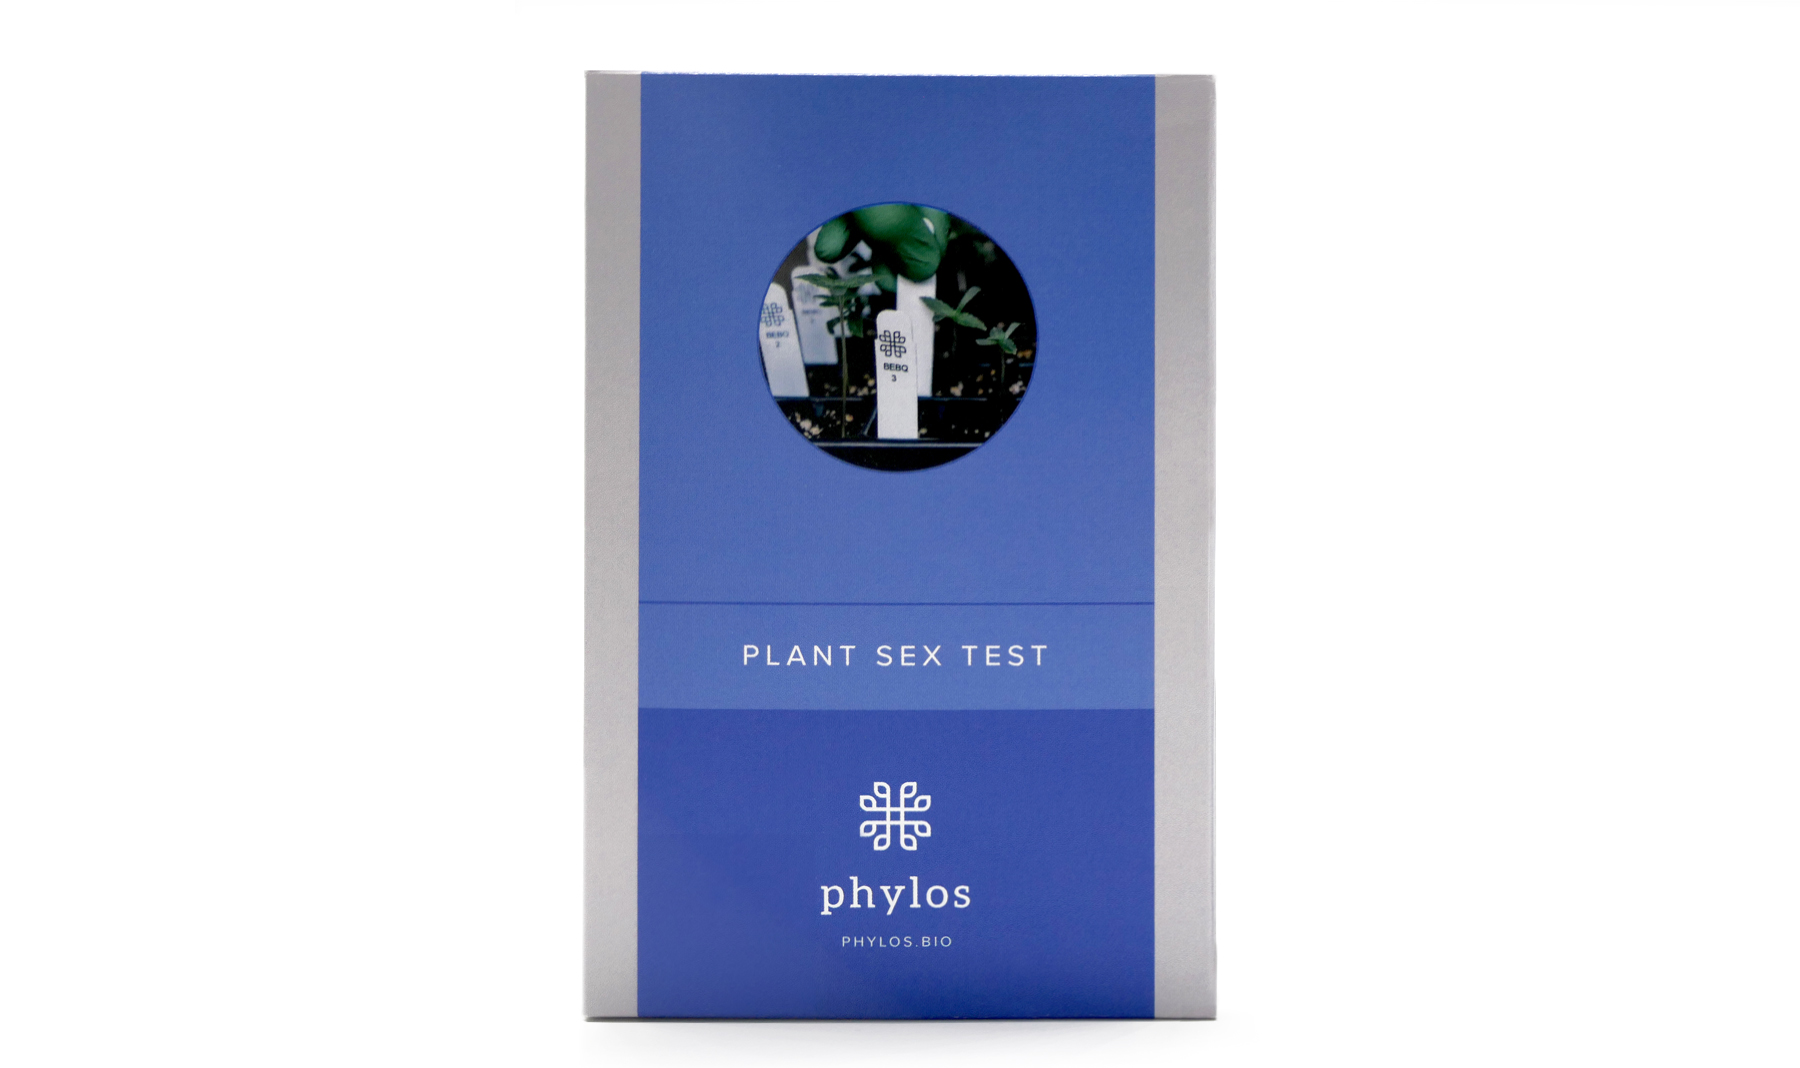 Plant Sex Test kit packaging